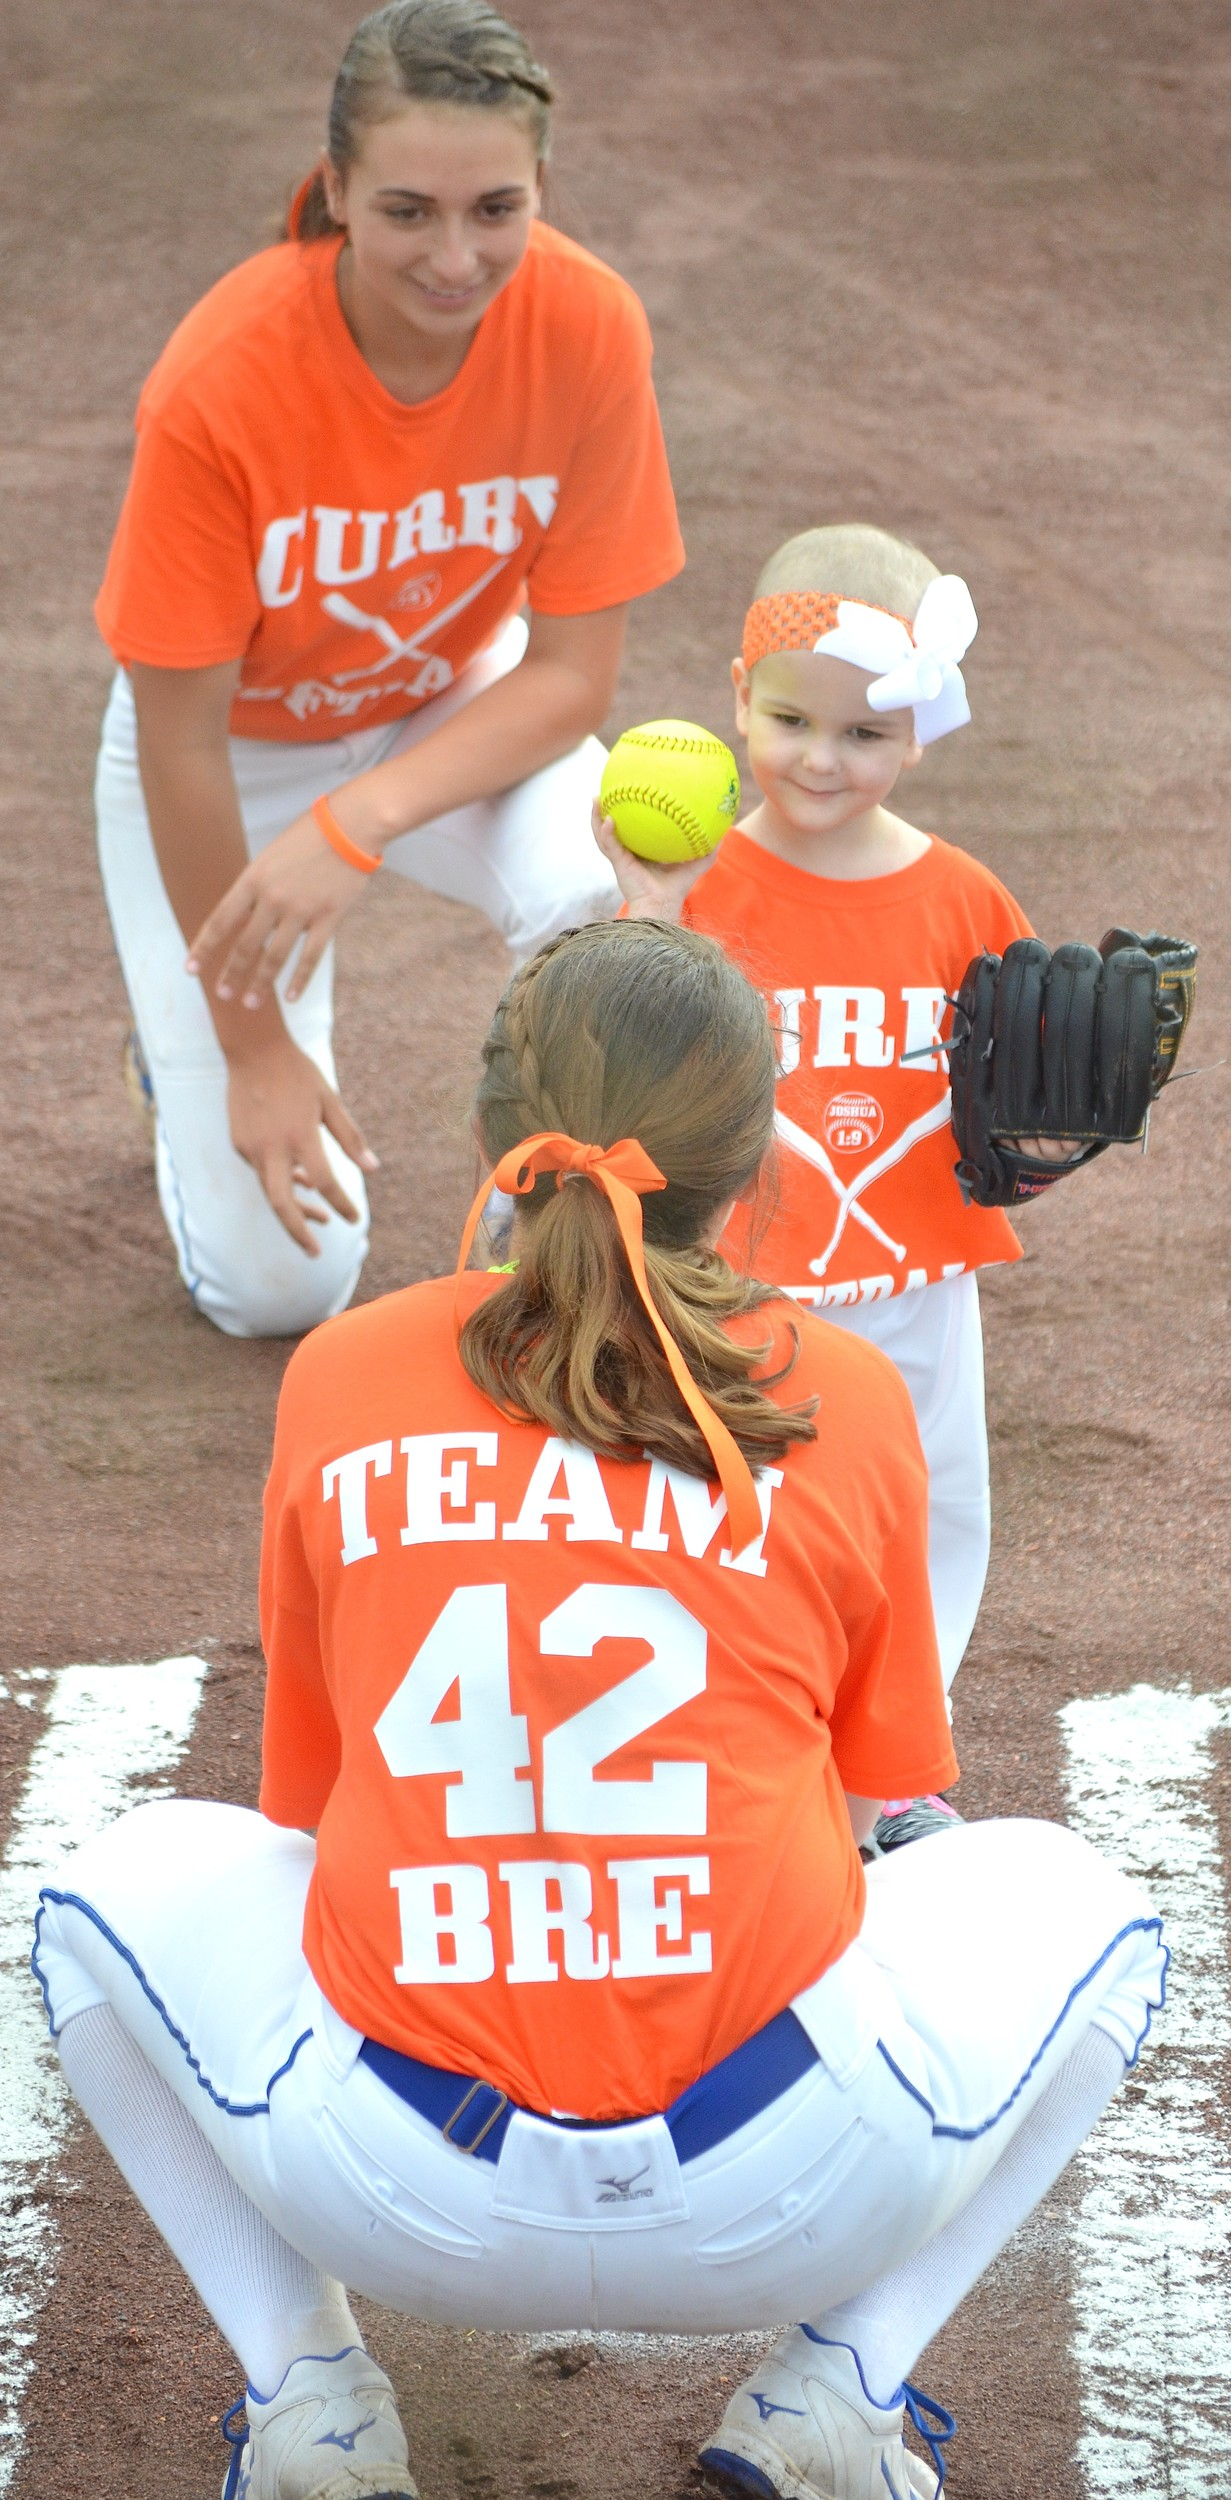 Brianna Cordell, 3, throws out the first pitch to her cousin Kylee Cordell as cousin Laycee Cordell looks on prior to Curry's home softball game against Dora on Monday. Brianna was diagnosed with acute lymphoblastic leukemia in September. Curry wore orange jerseys for Brianna on Monday. Orange is the color for leukemia awareness.